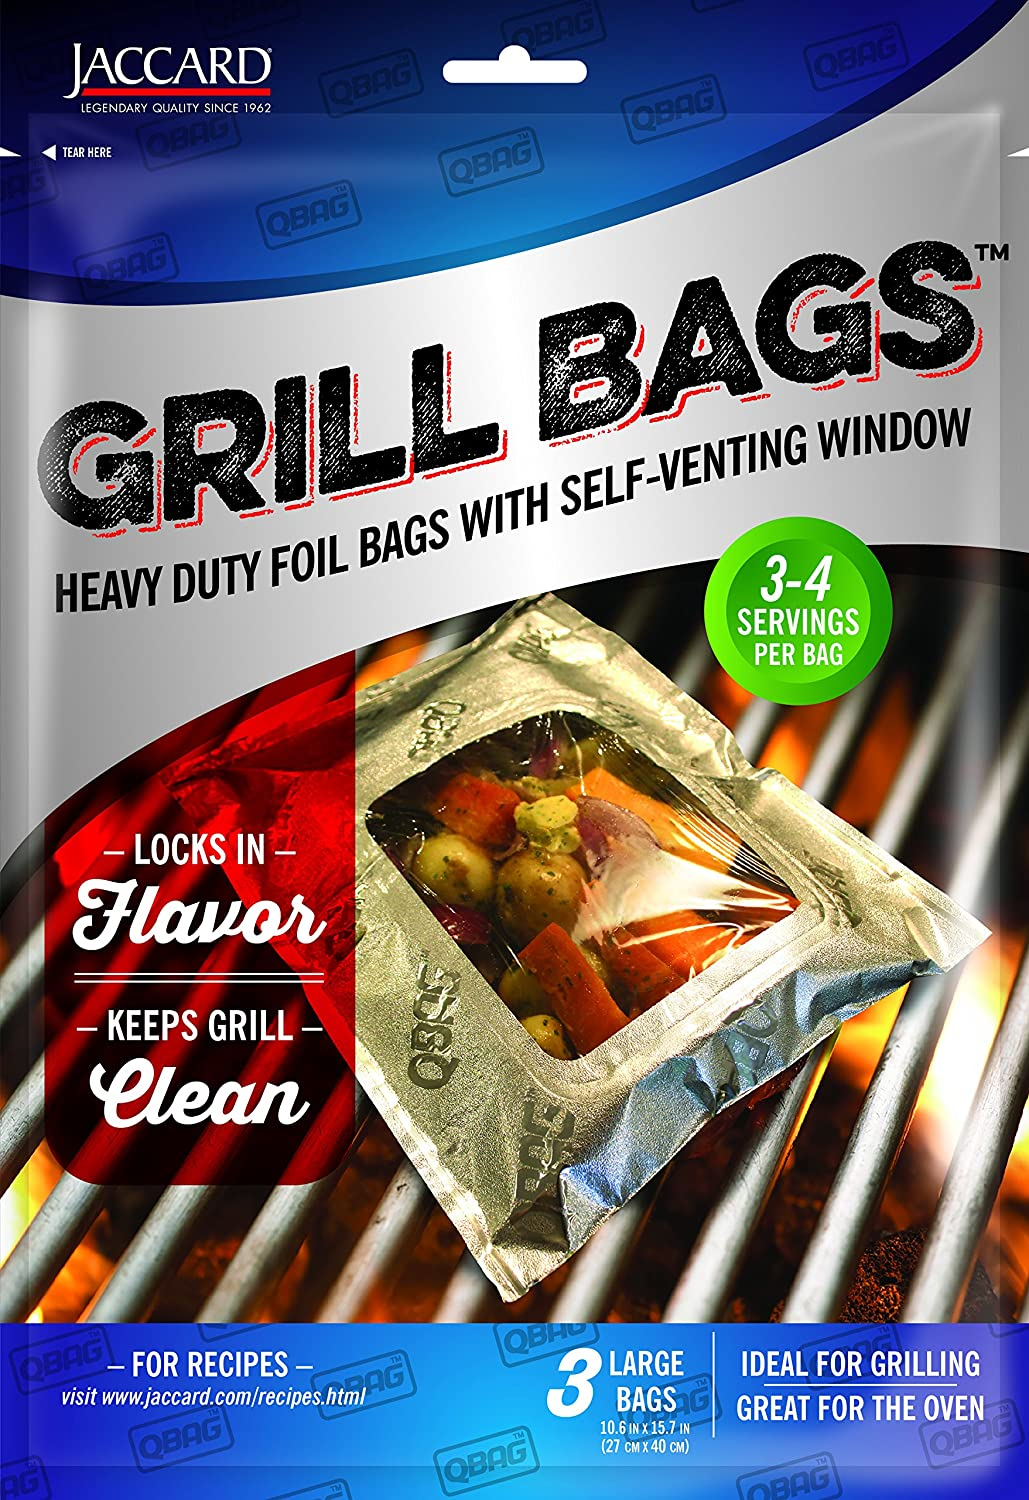 Jaccard 201506 Qbag Heavy Duty Aluminum Grill & Oven Bag, Large